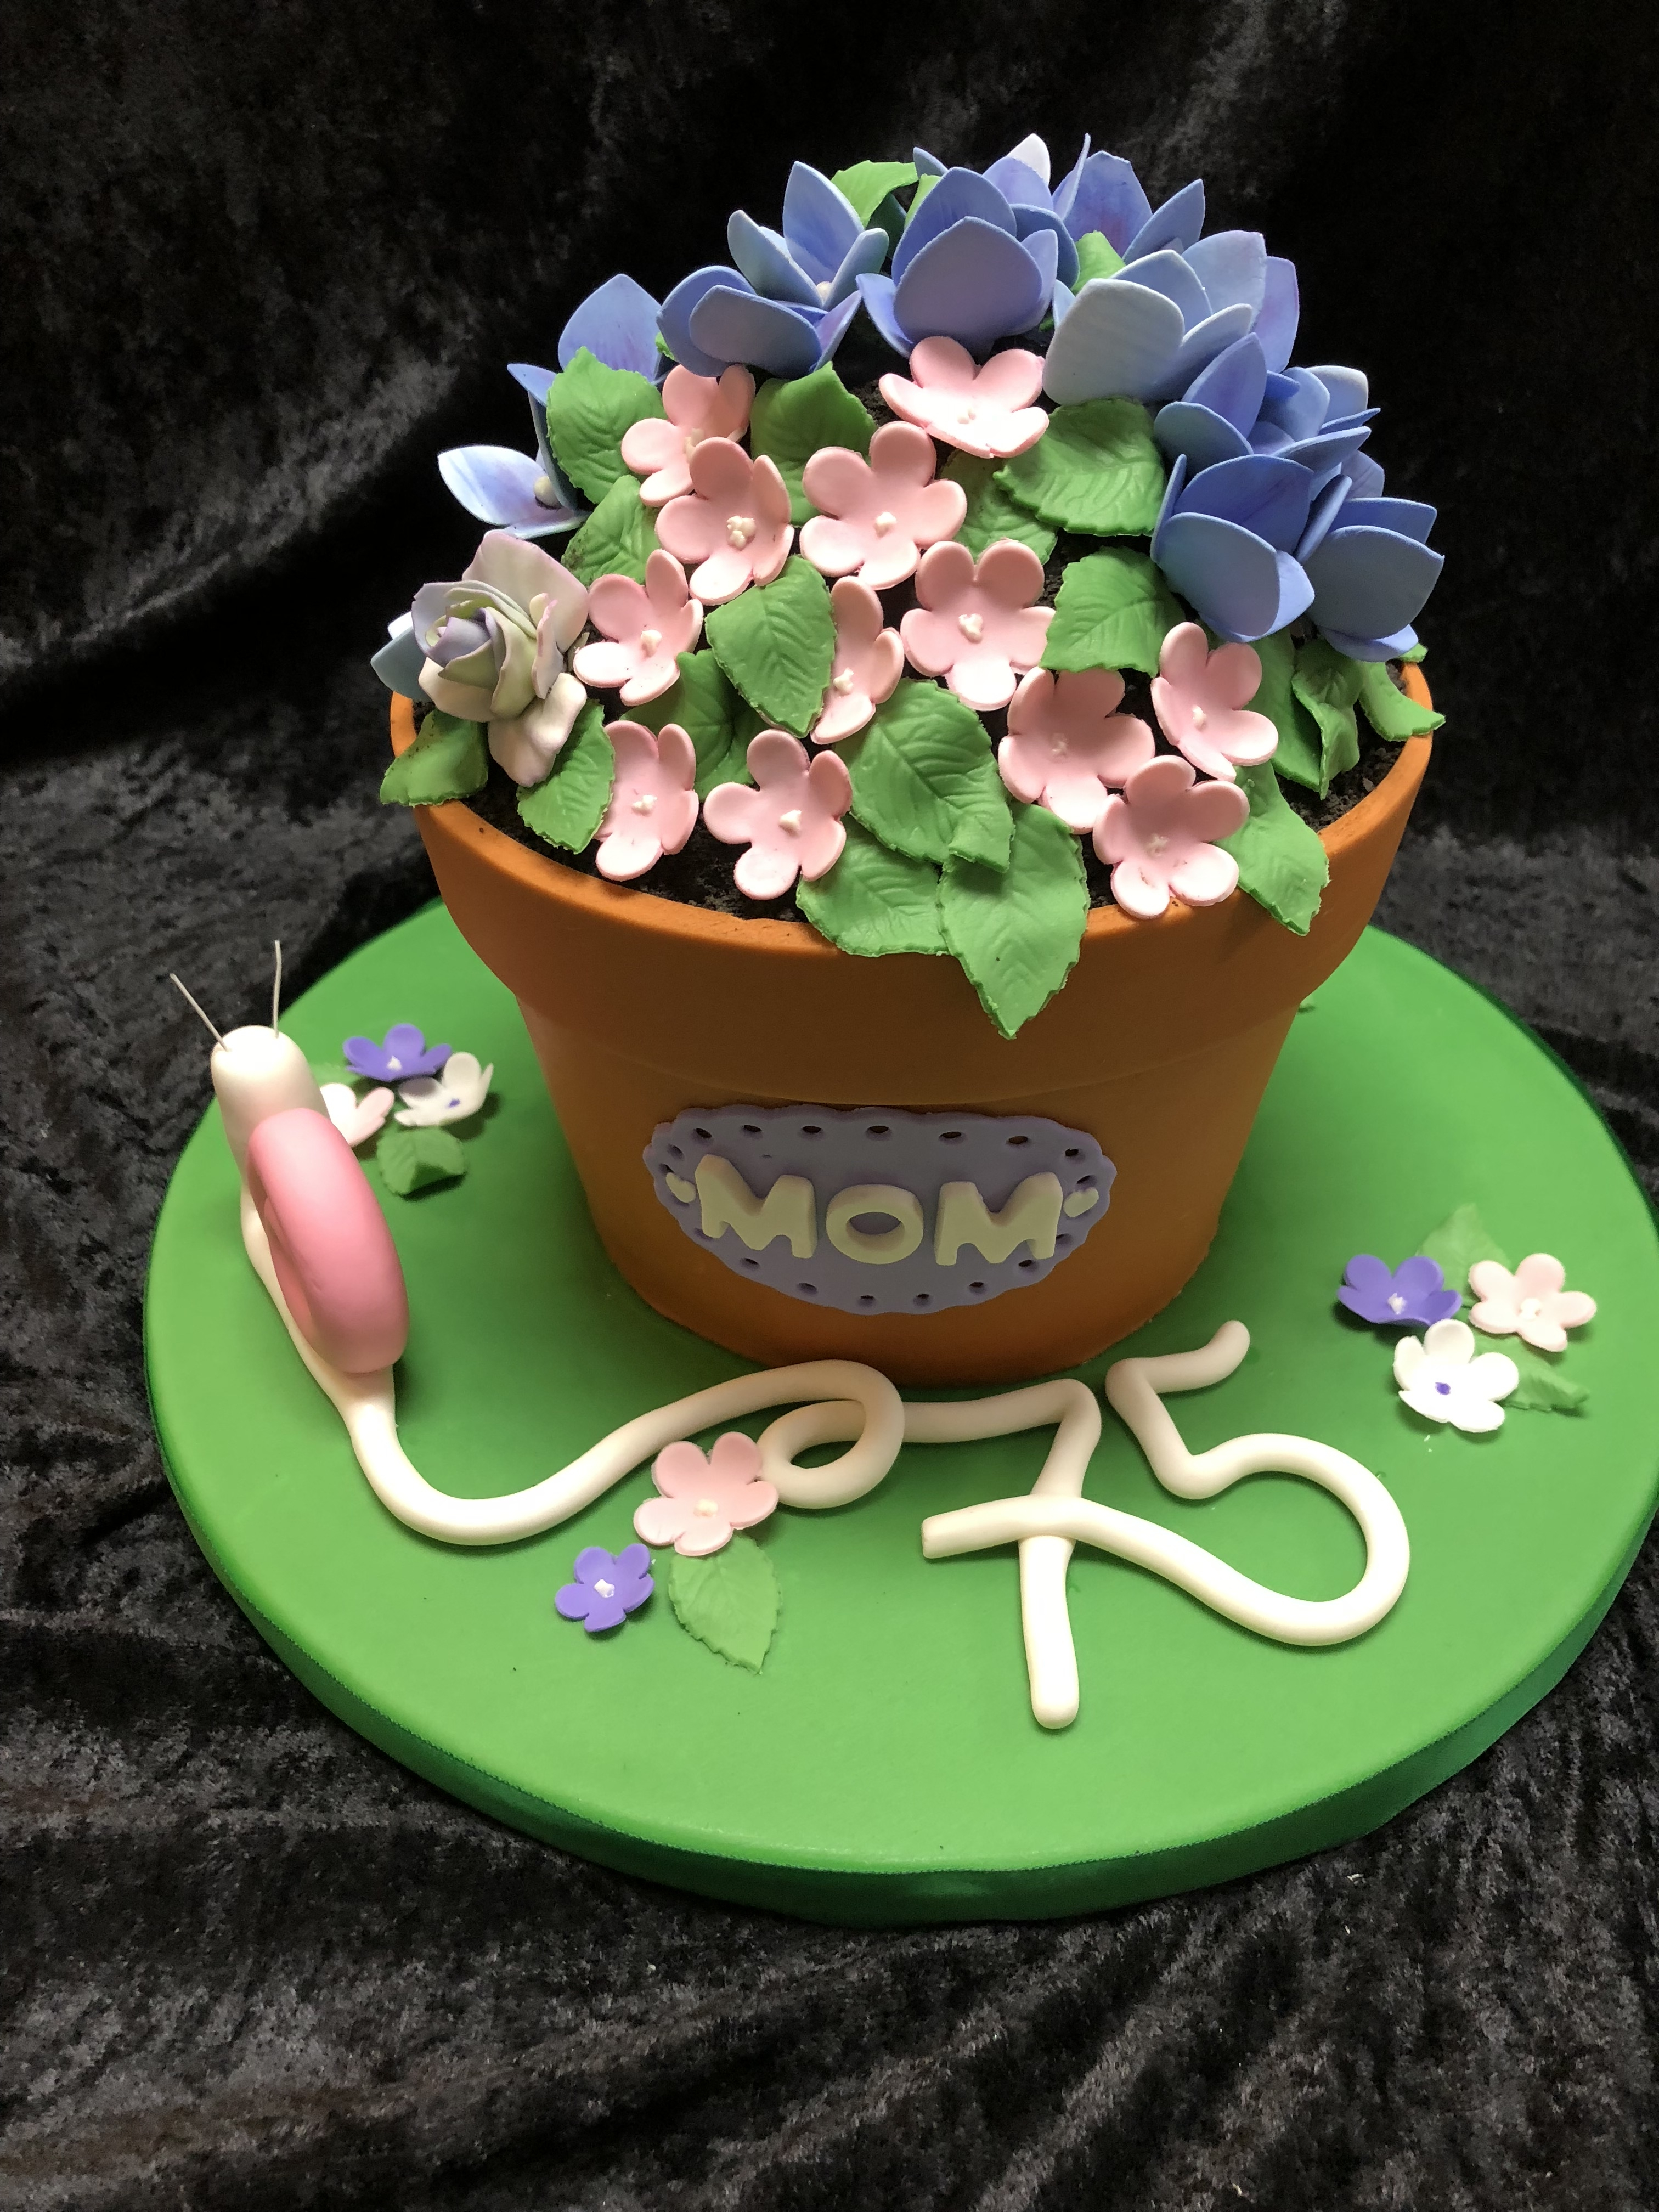 3104, 75th birthday, seventy fifth birthday, flower, flowers, hydrangeas, snail, pot, terra cotta, carved